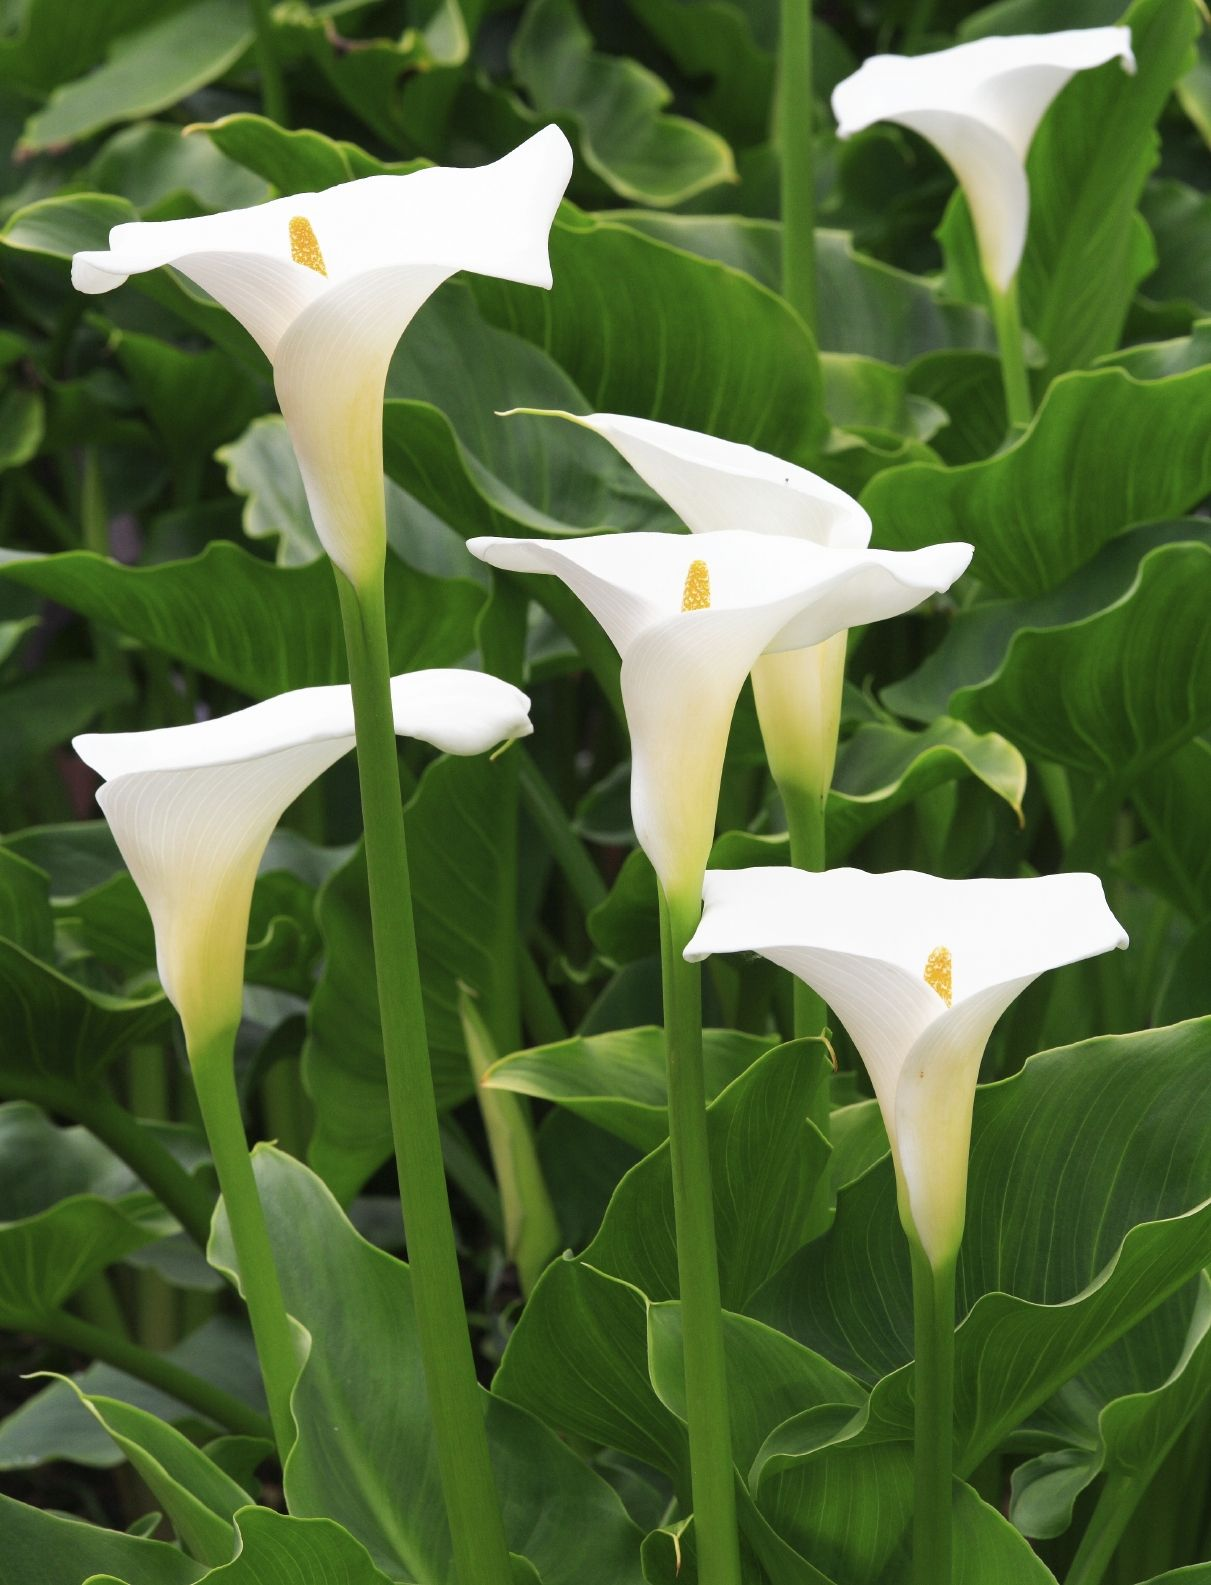 Do You Deadhead Calla Lily Plants Removing Spent Blossoms On Calla Lilies Lily Plants Calla Lily Bulbs Zantedeschia Aethiopica